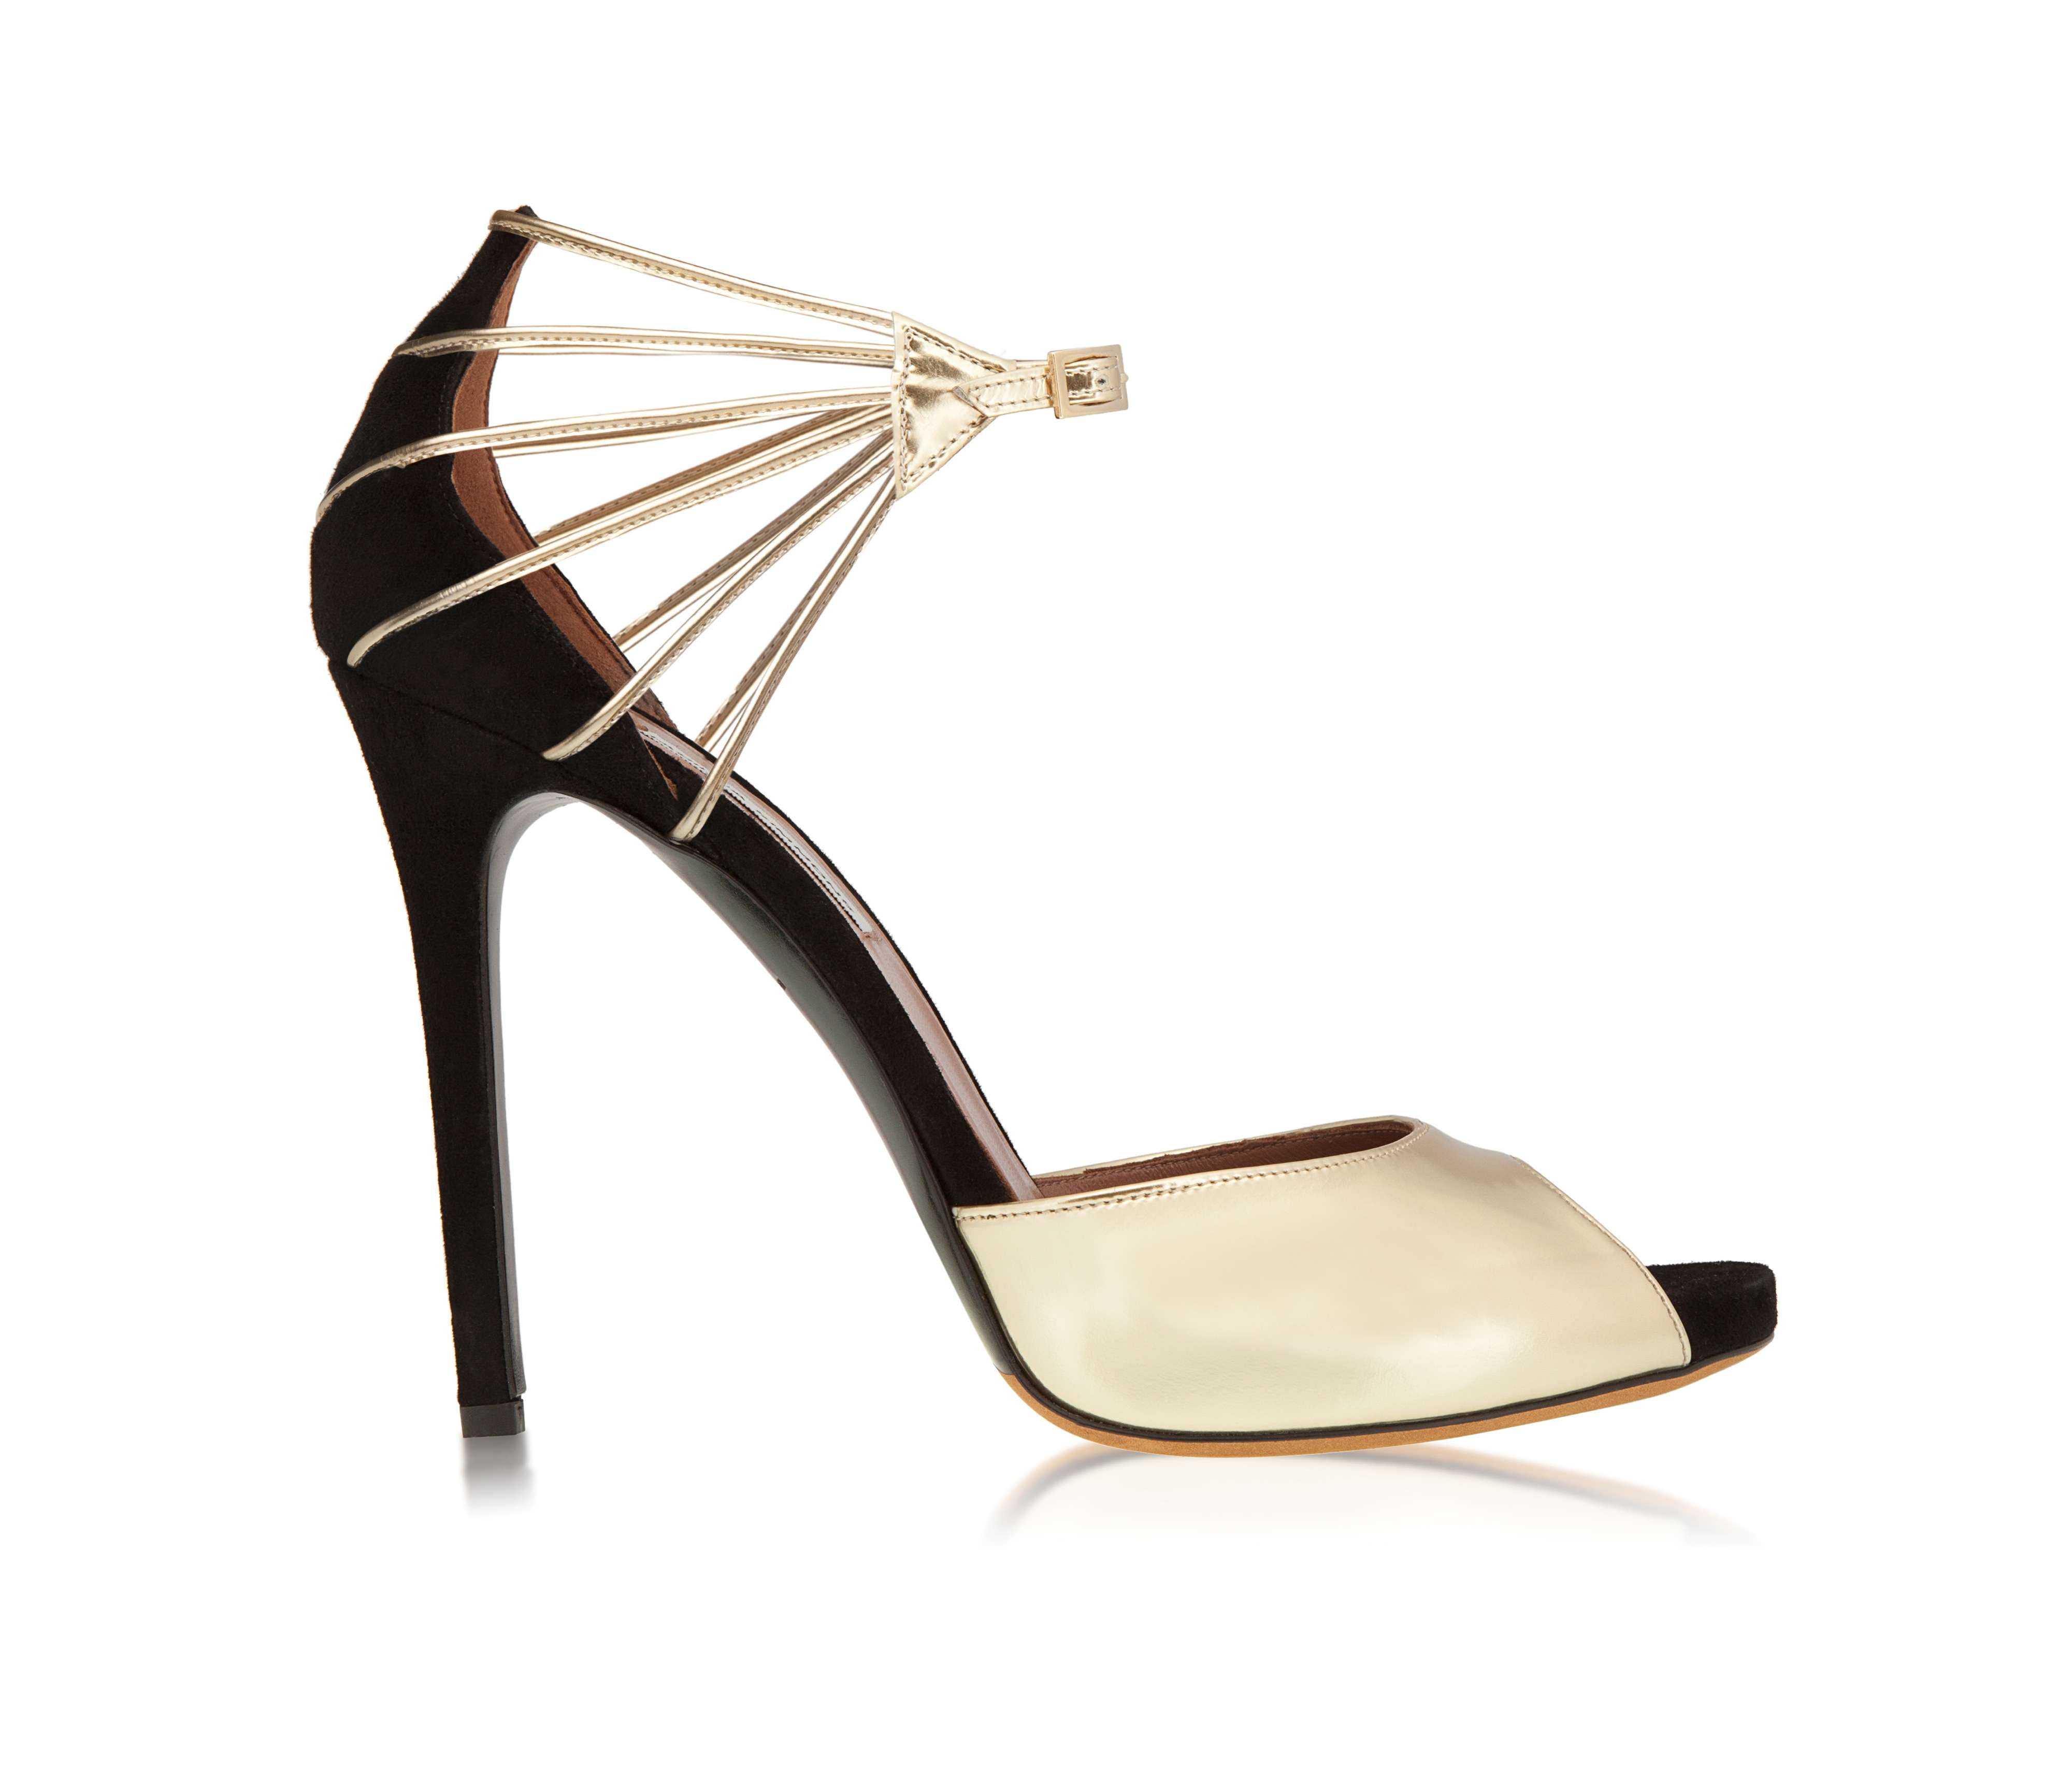 TabithaSimmons exclusively for shoescribe.com (1)